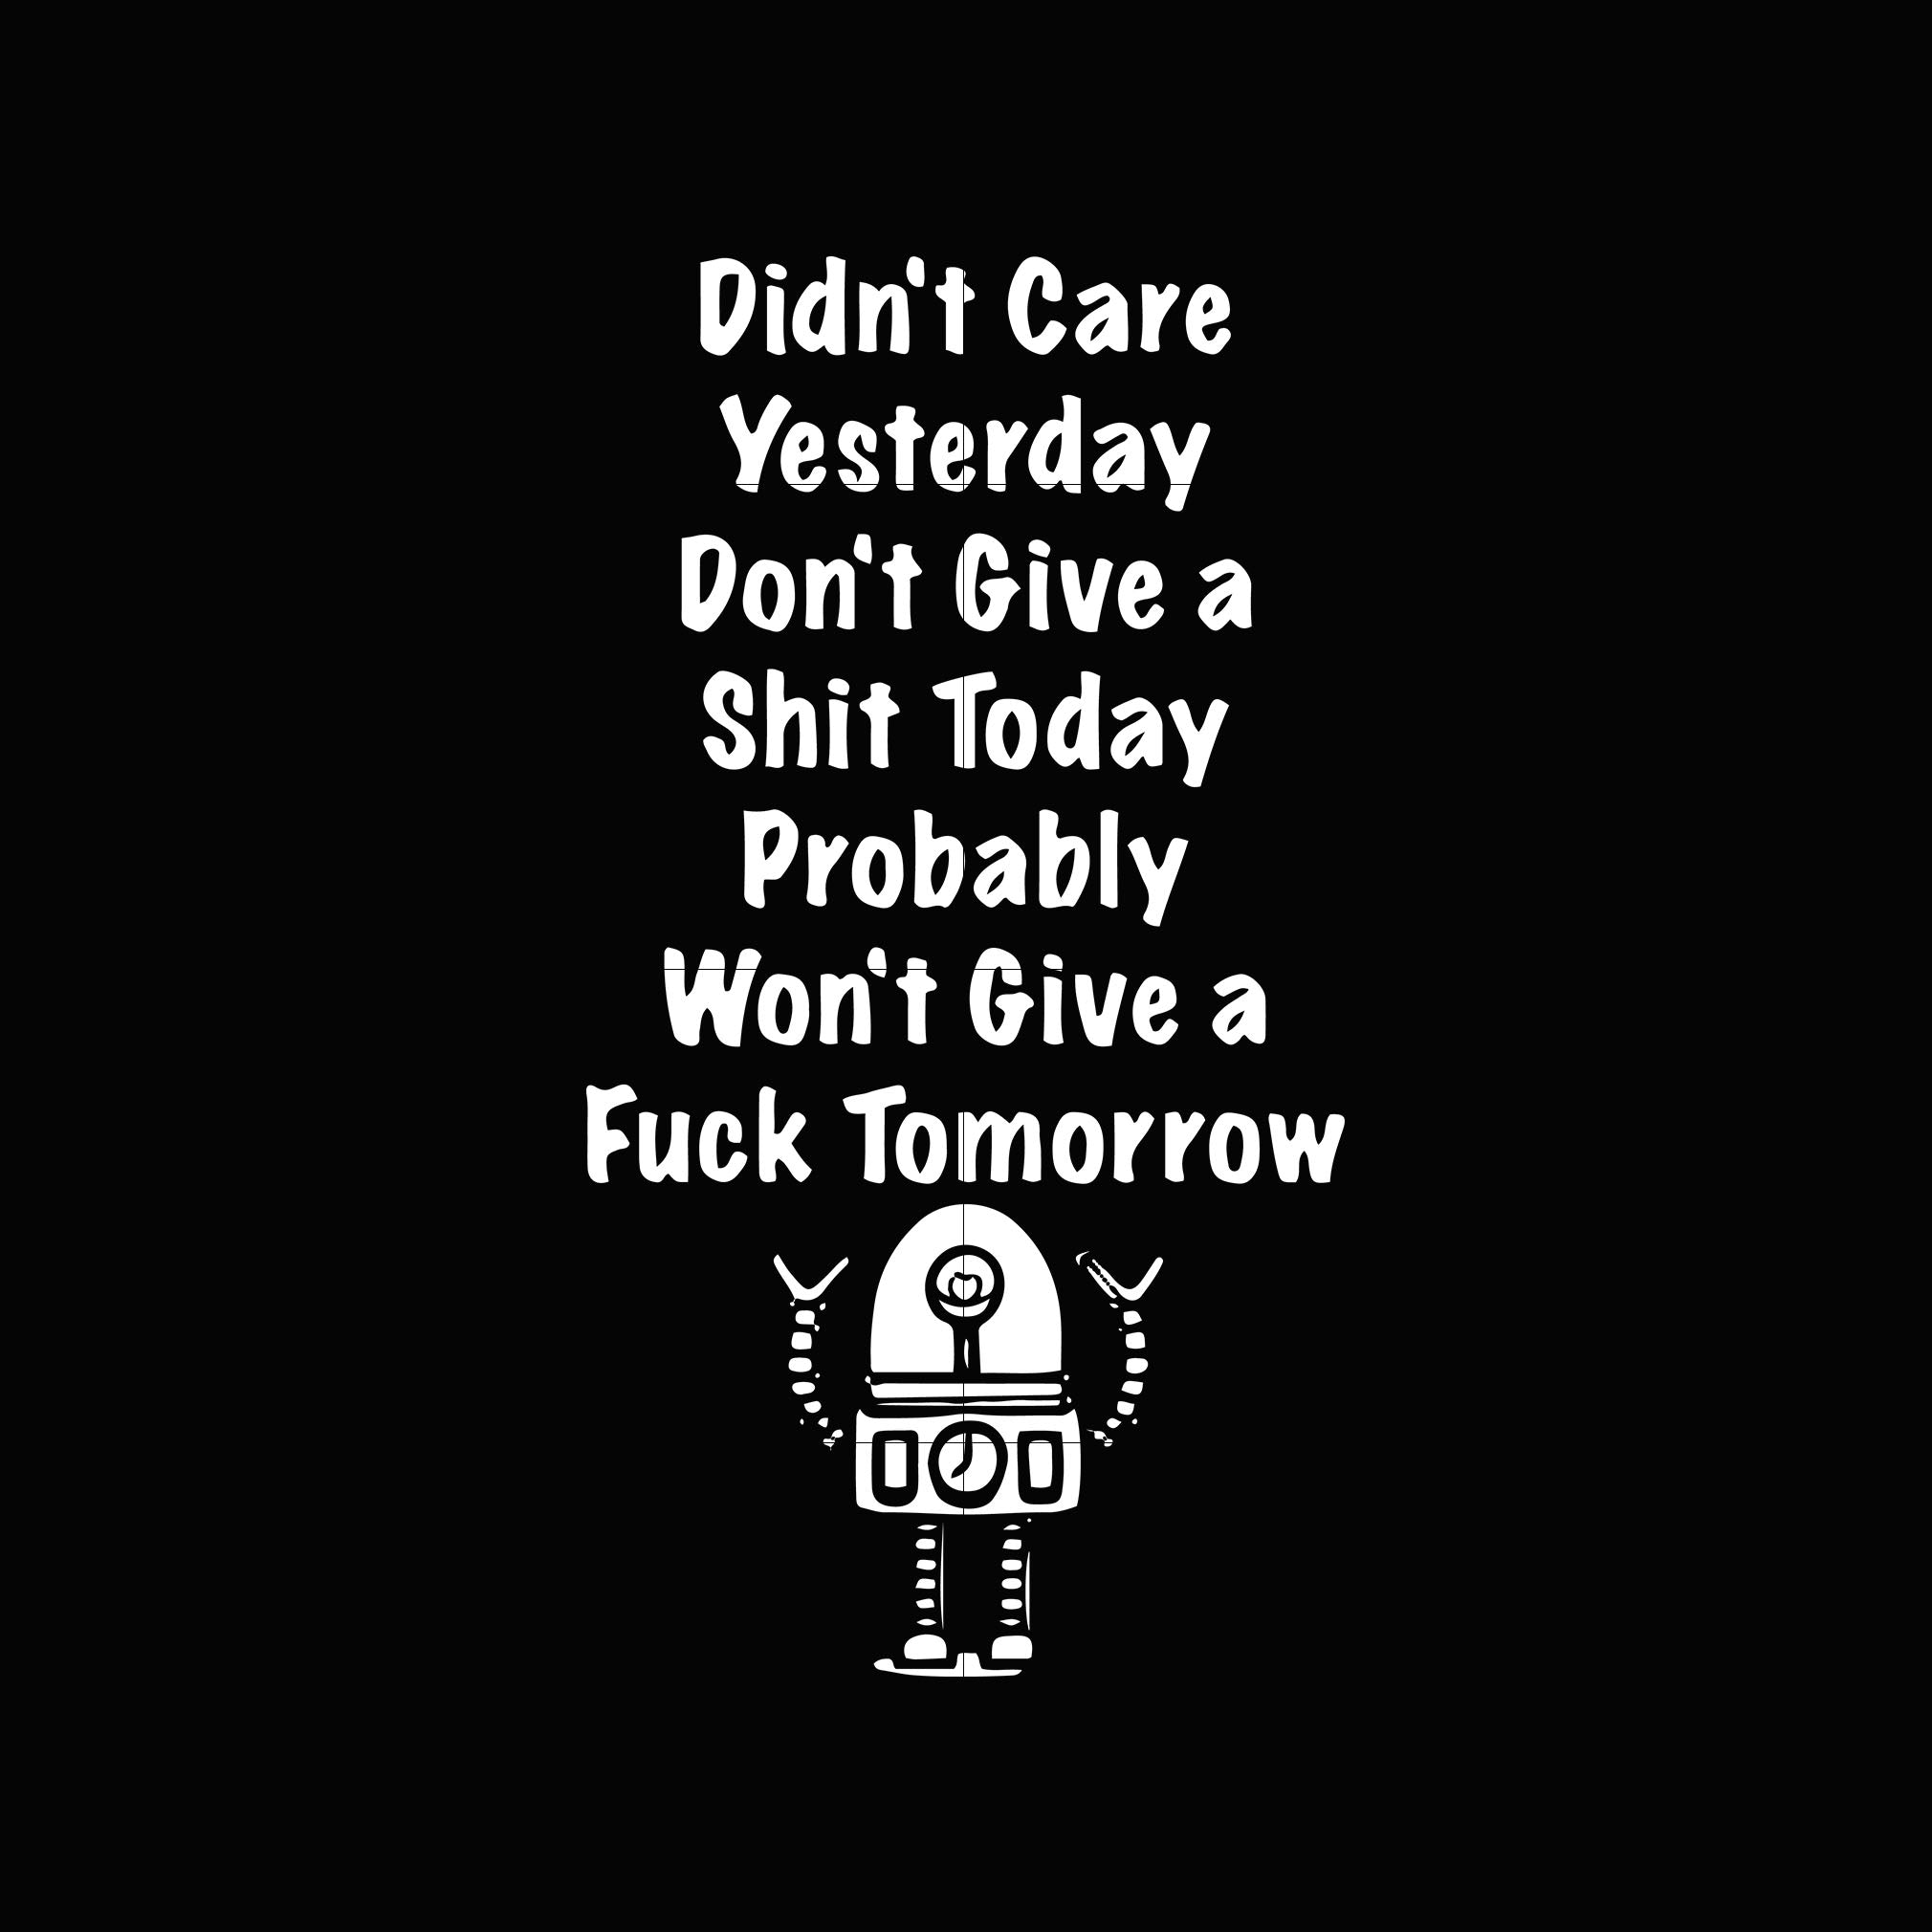 Didn't care yesterday don't give a shit today probably won't give a fuck tomorrow svg ,dxf,eps,png digital file